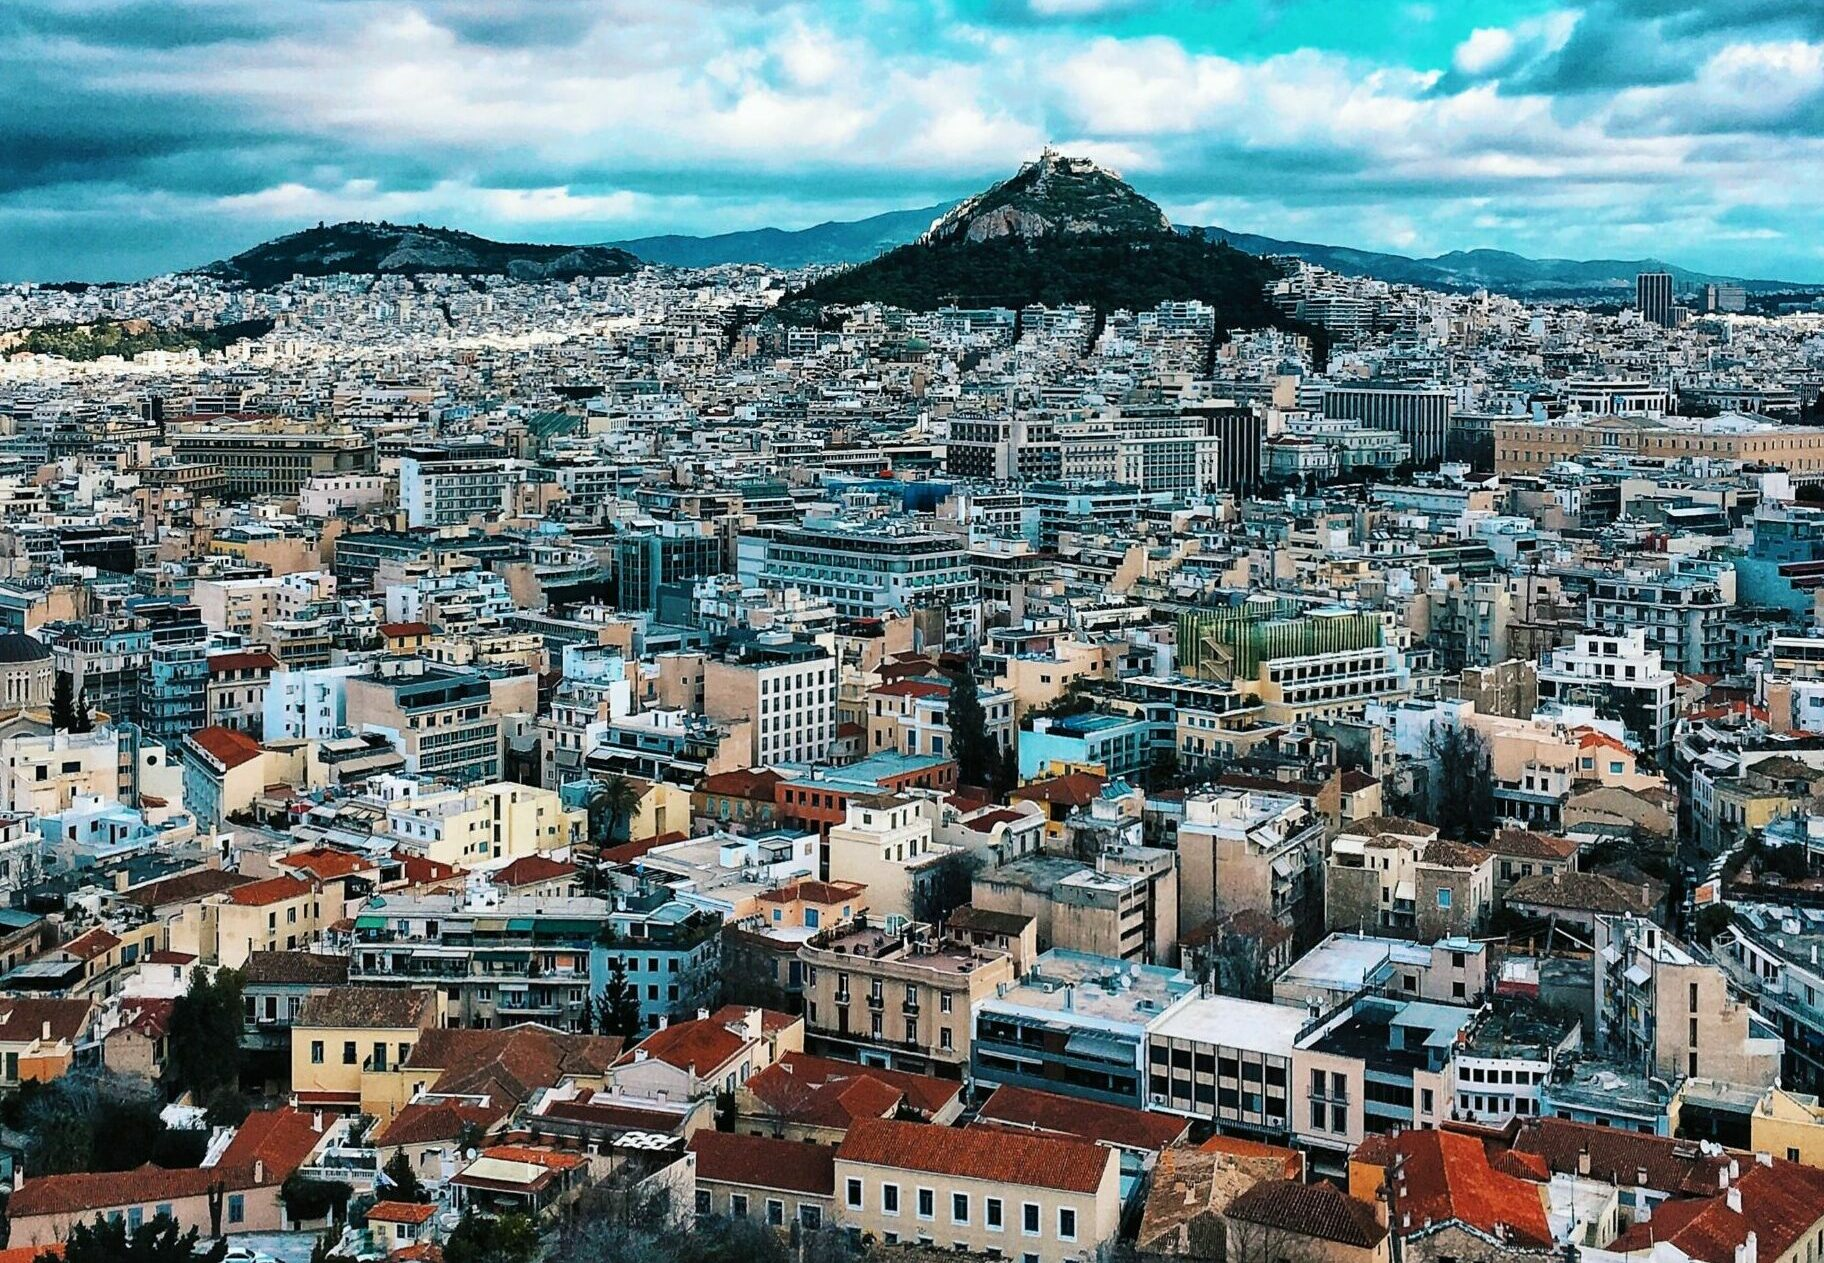 """Attica: Hymettus, the most historic mountain of Athens, they called it """" the crazy one"""""""